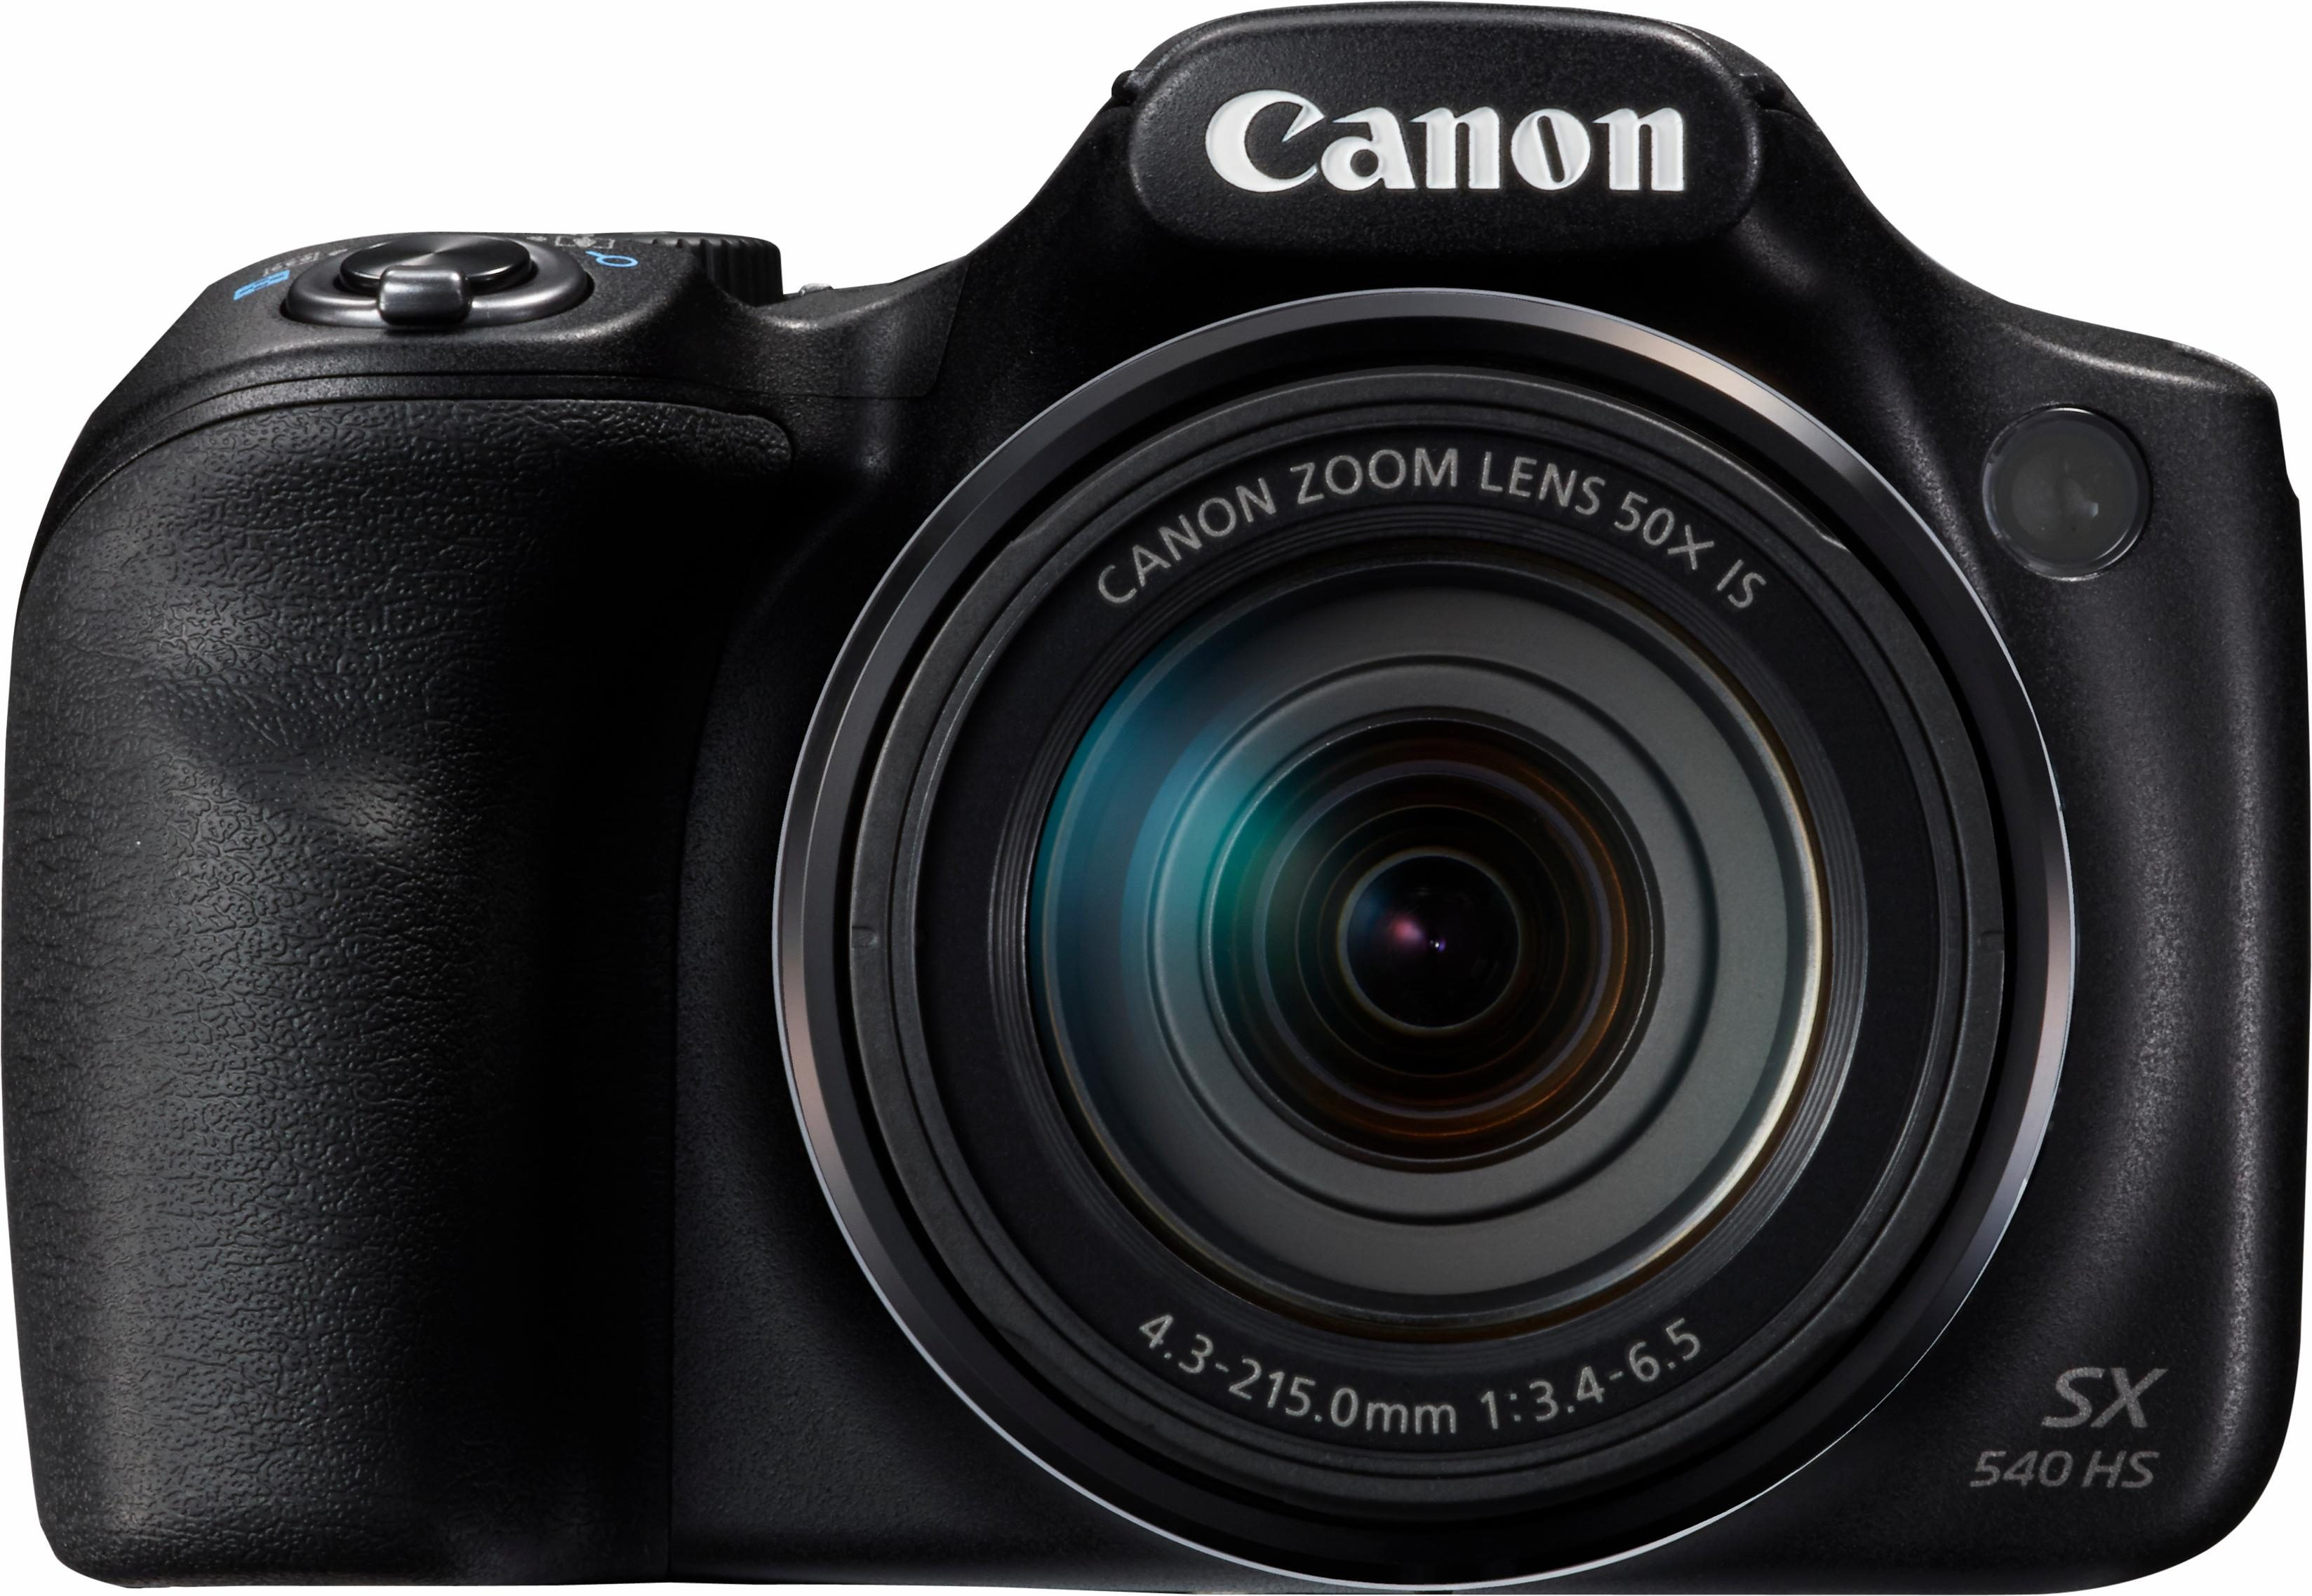 Canon PowerShot SX540 HS Super Zoom Kamera, 20,3 Megapixel, 50x opt. Zoom, 7,5 cm (3 Zoll) Display